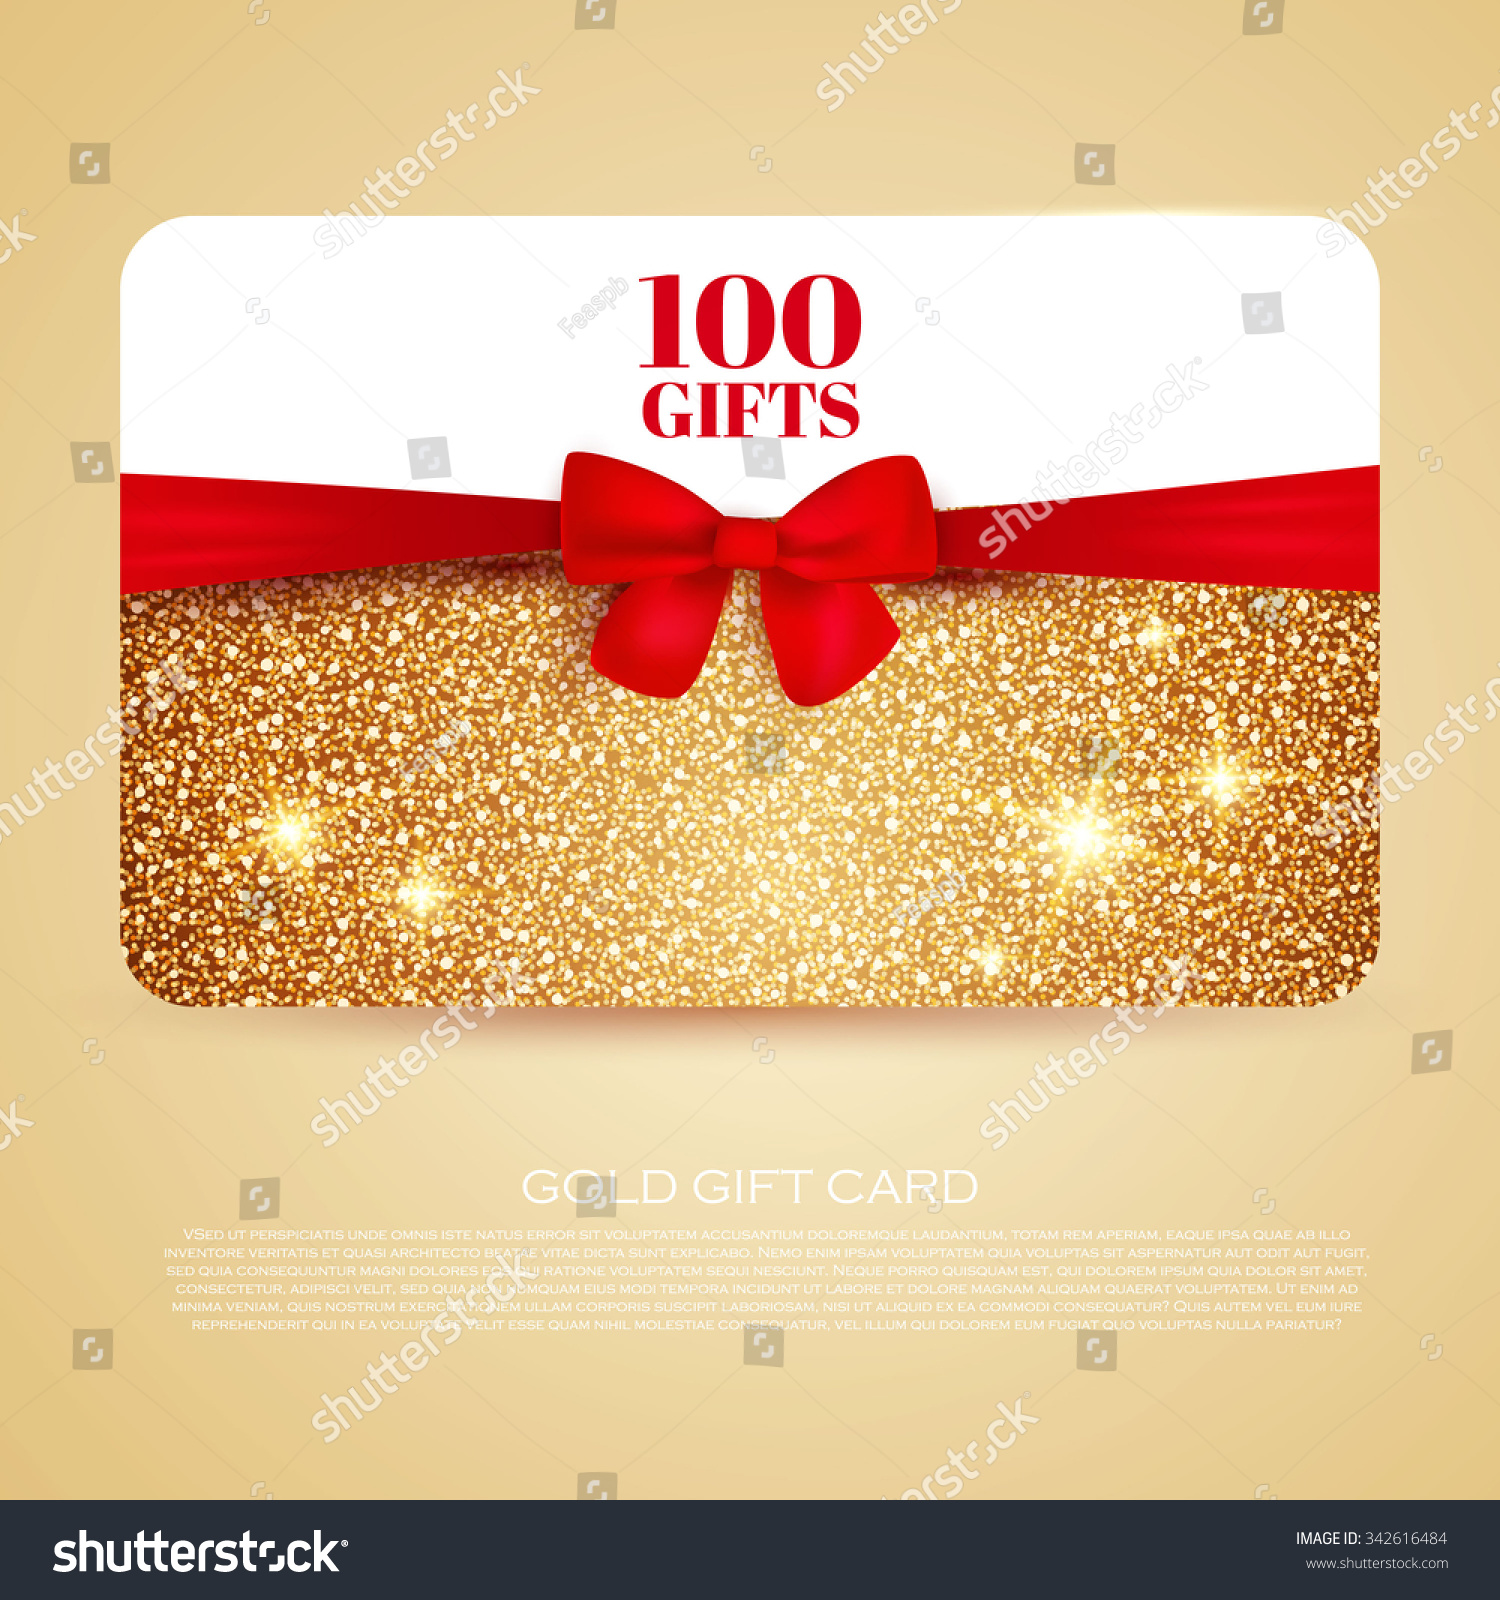 Gold Gift Coupon Gift Card Discount Stock Vector 342616484 ...